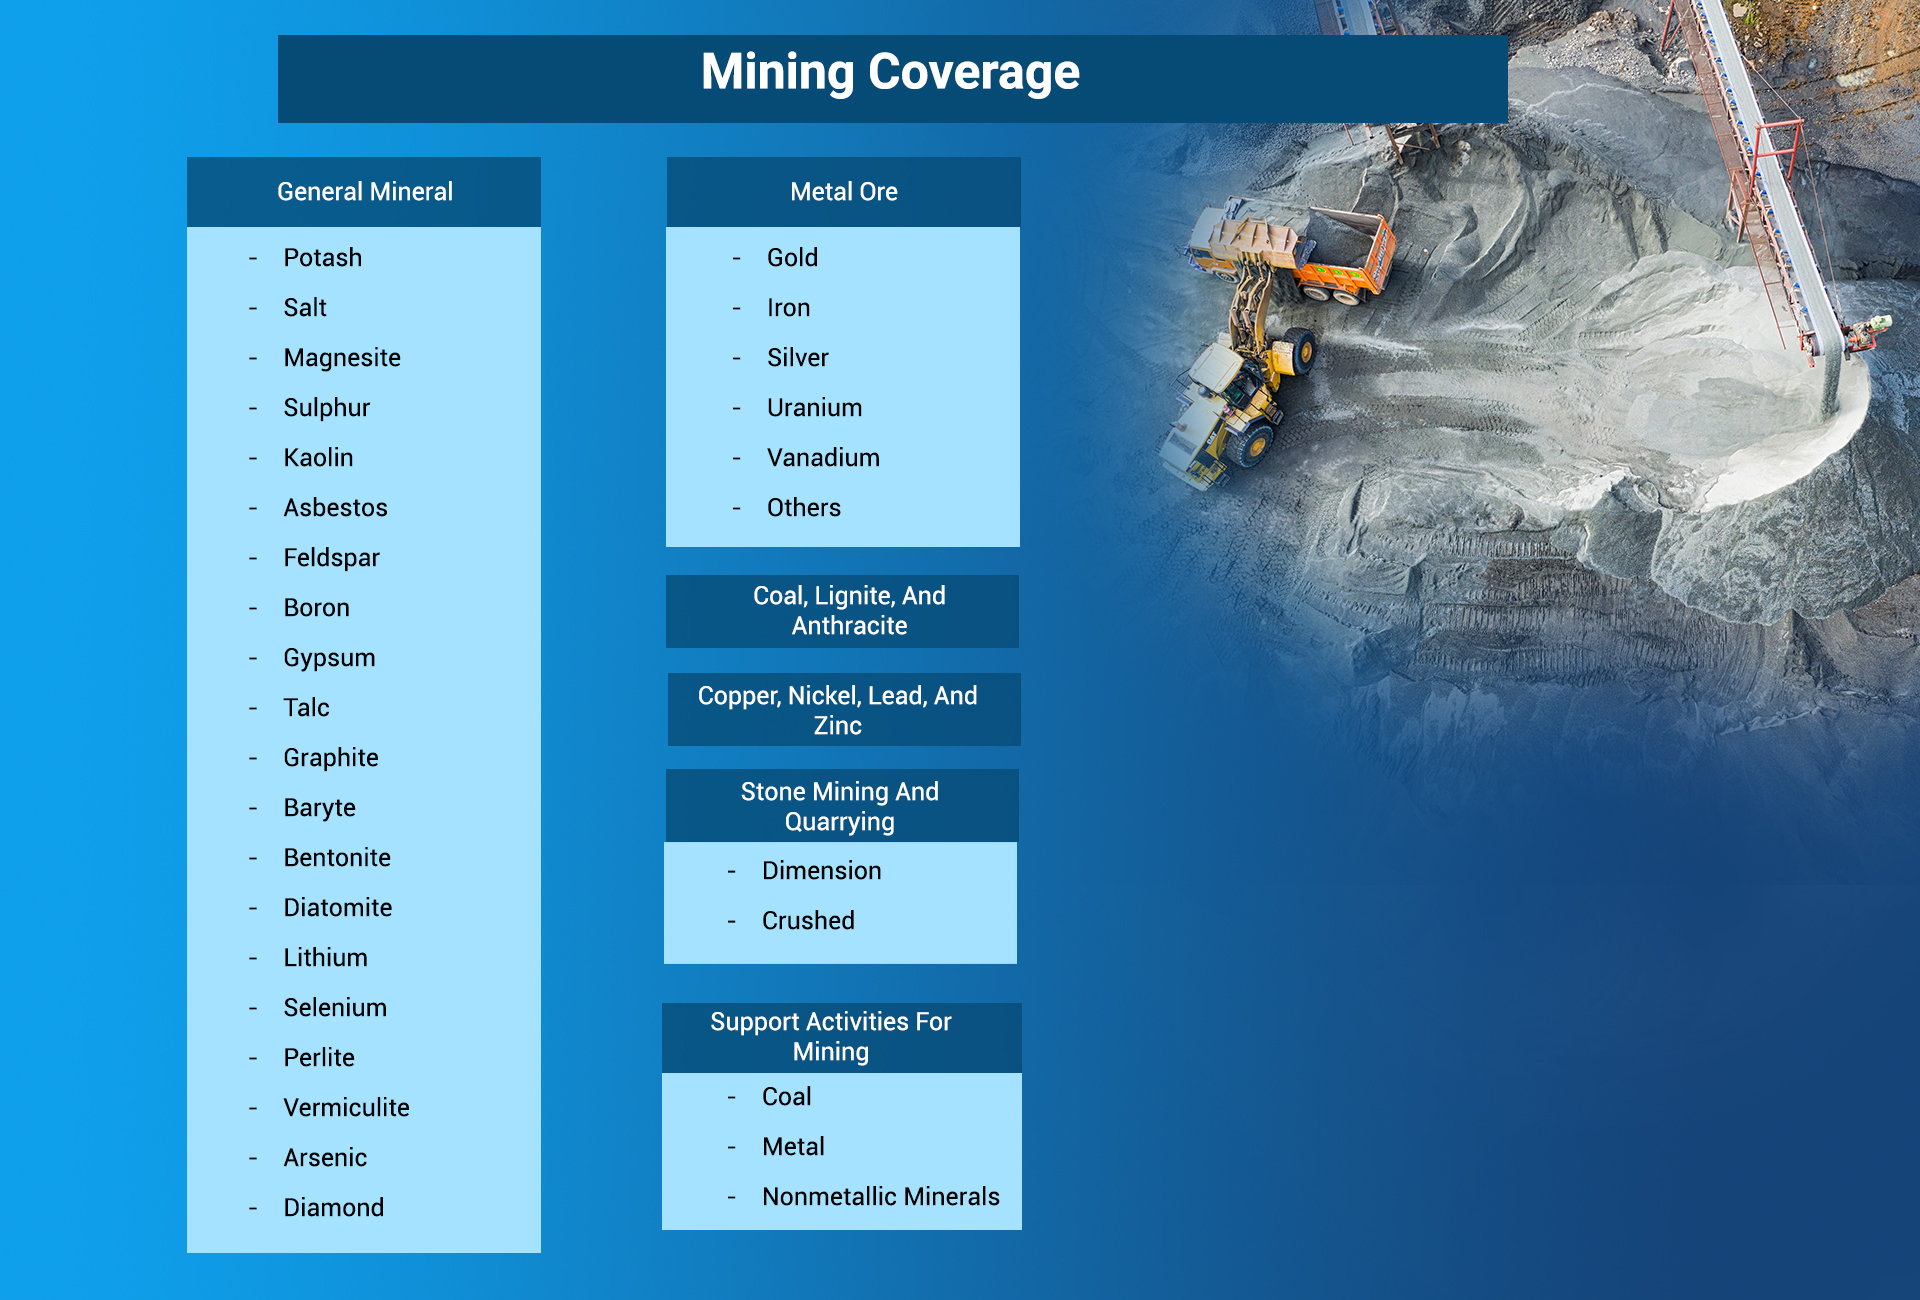 Mining Coverage